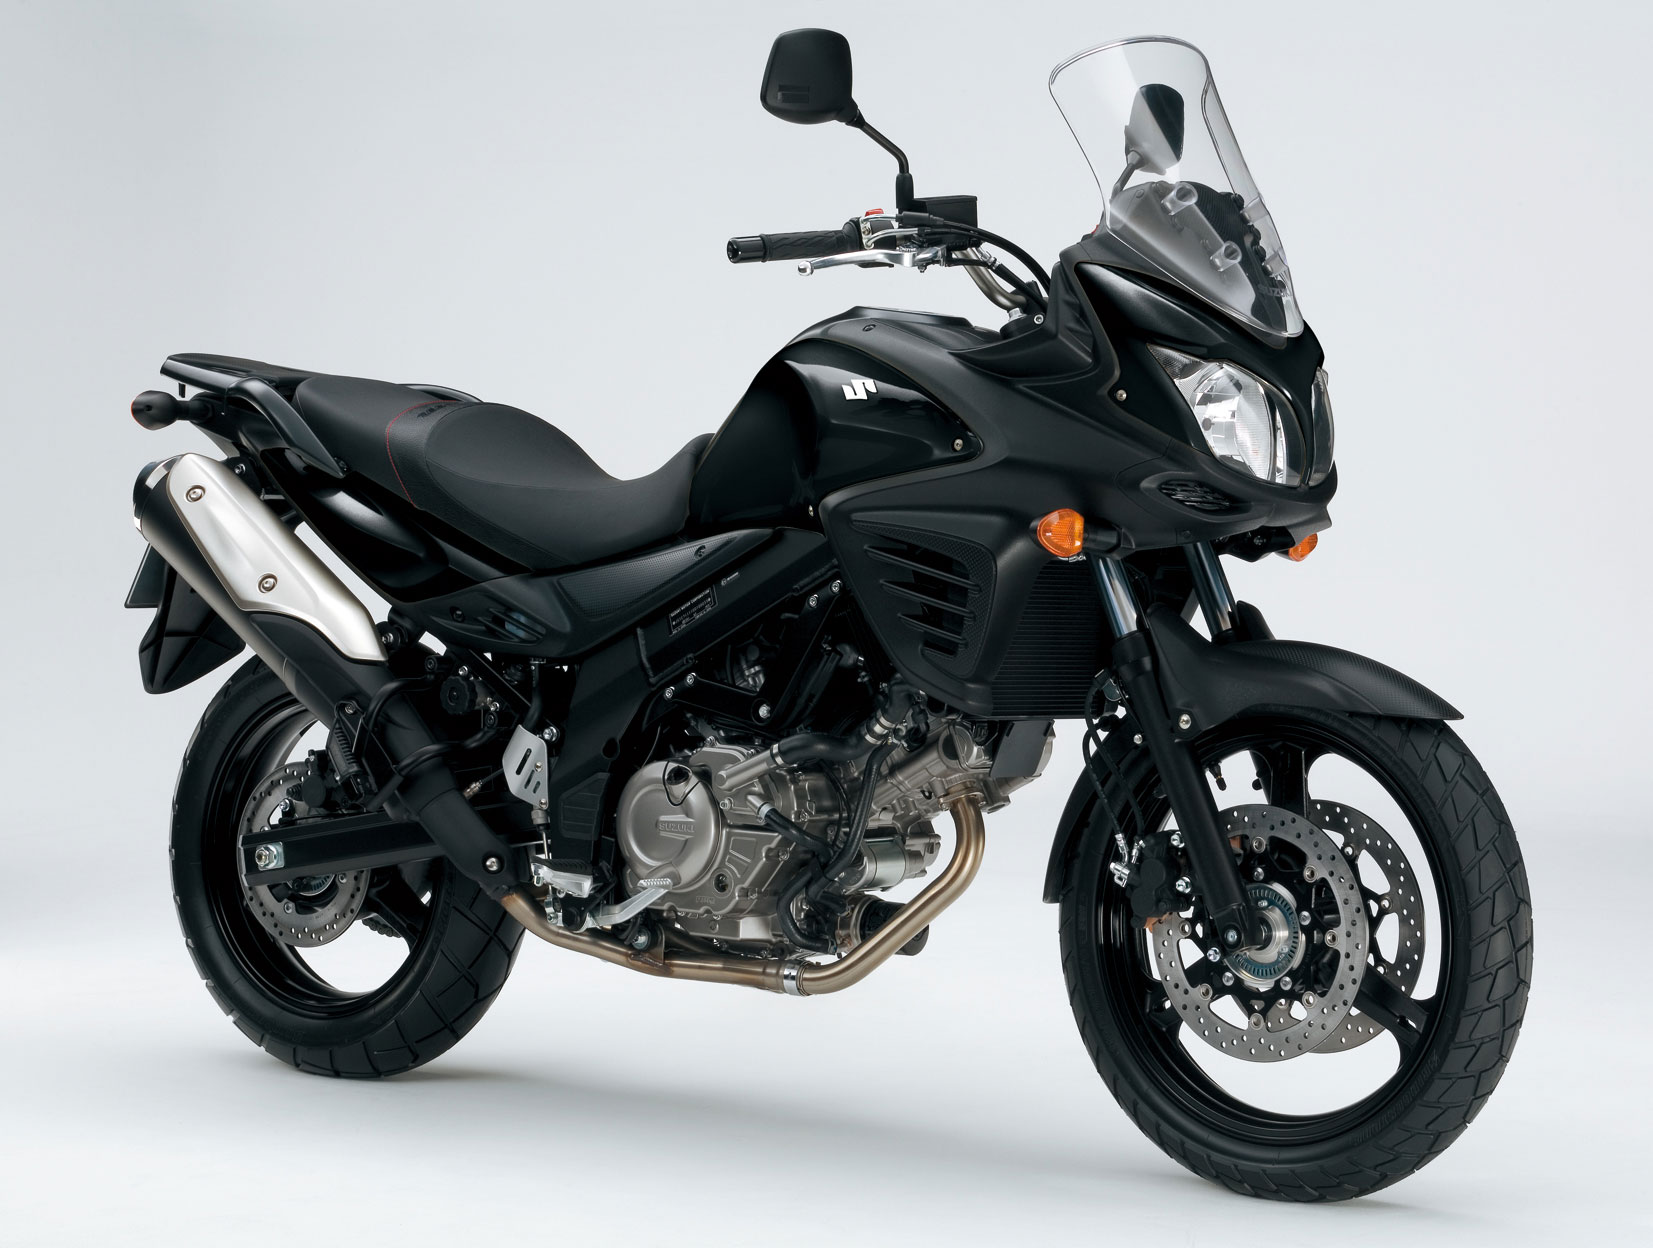 2014 Suzuki DL650 V-Strom Service Manual